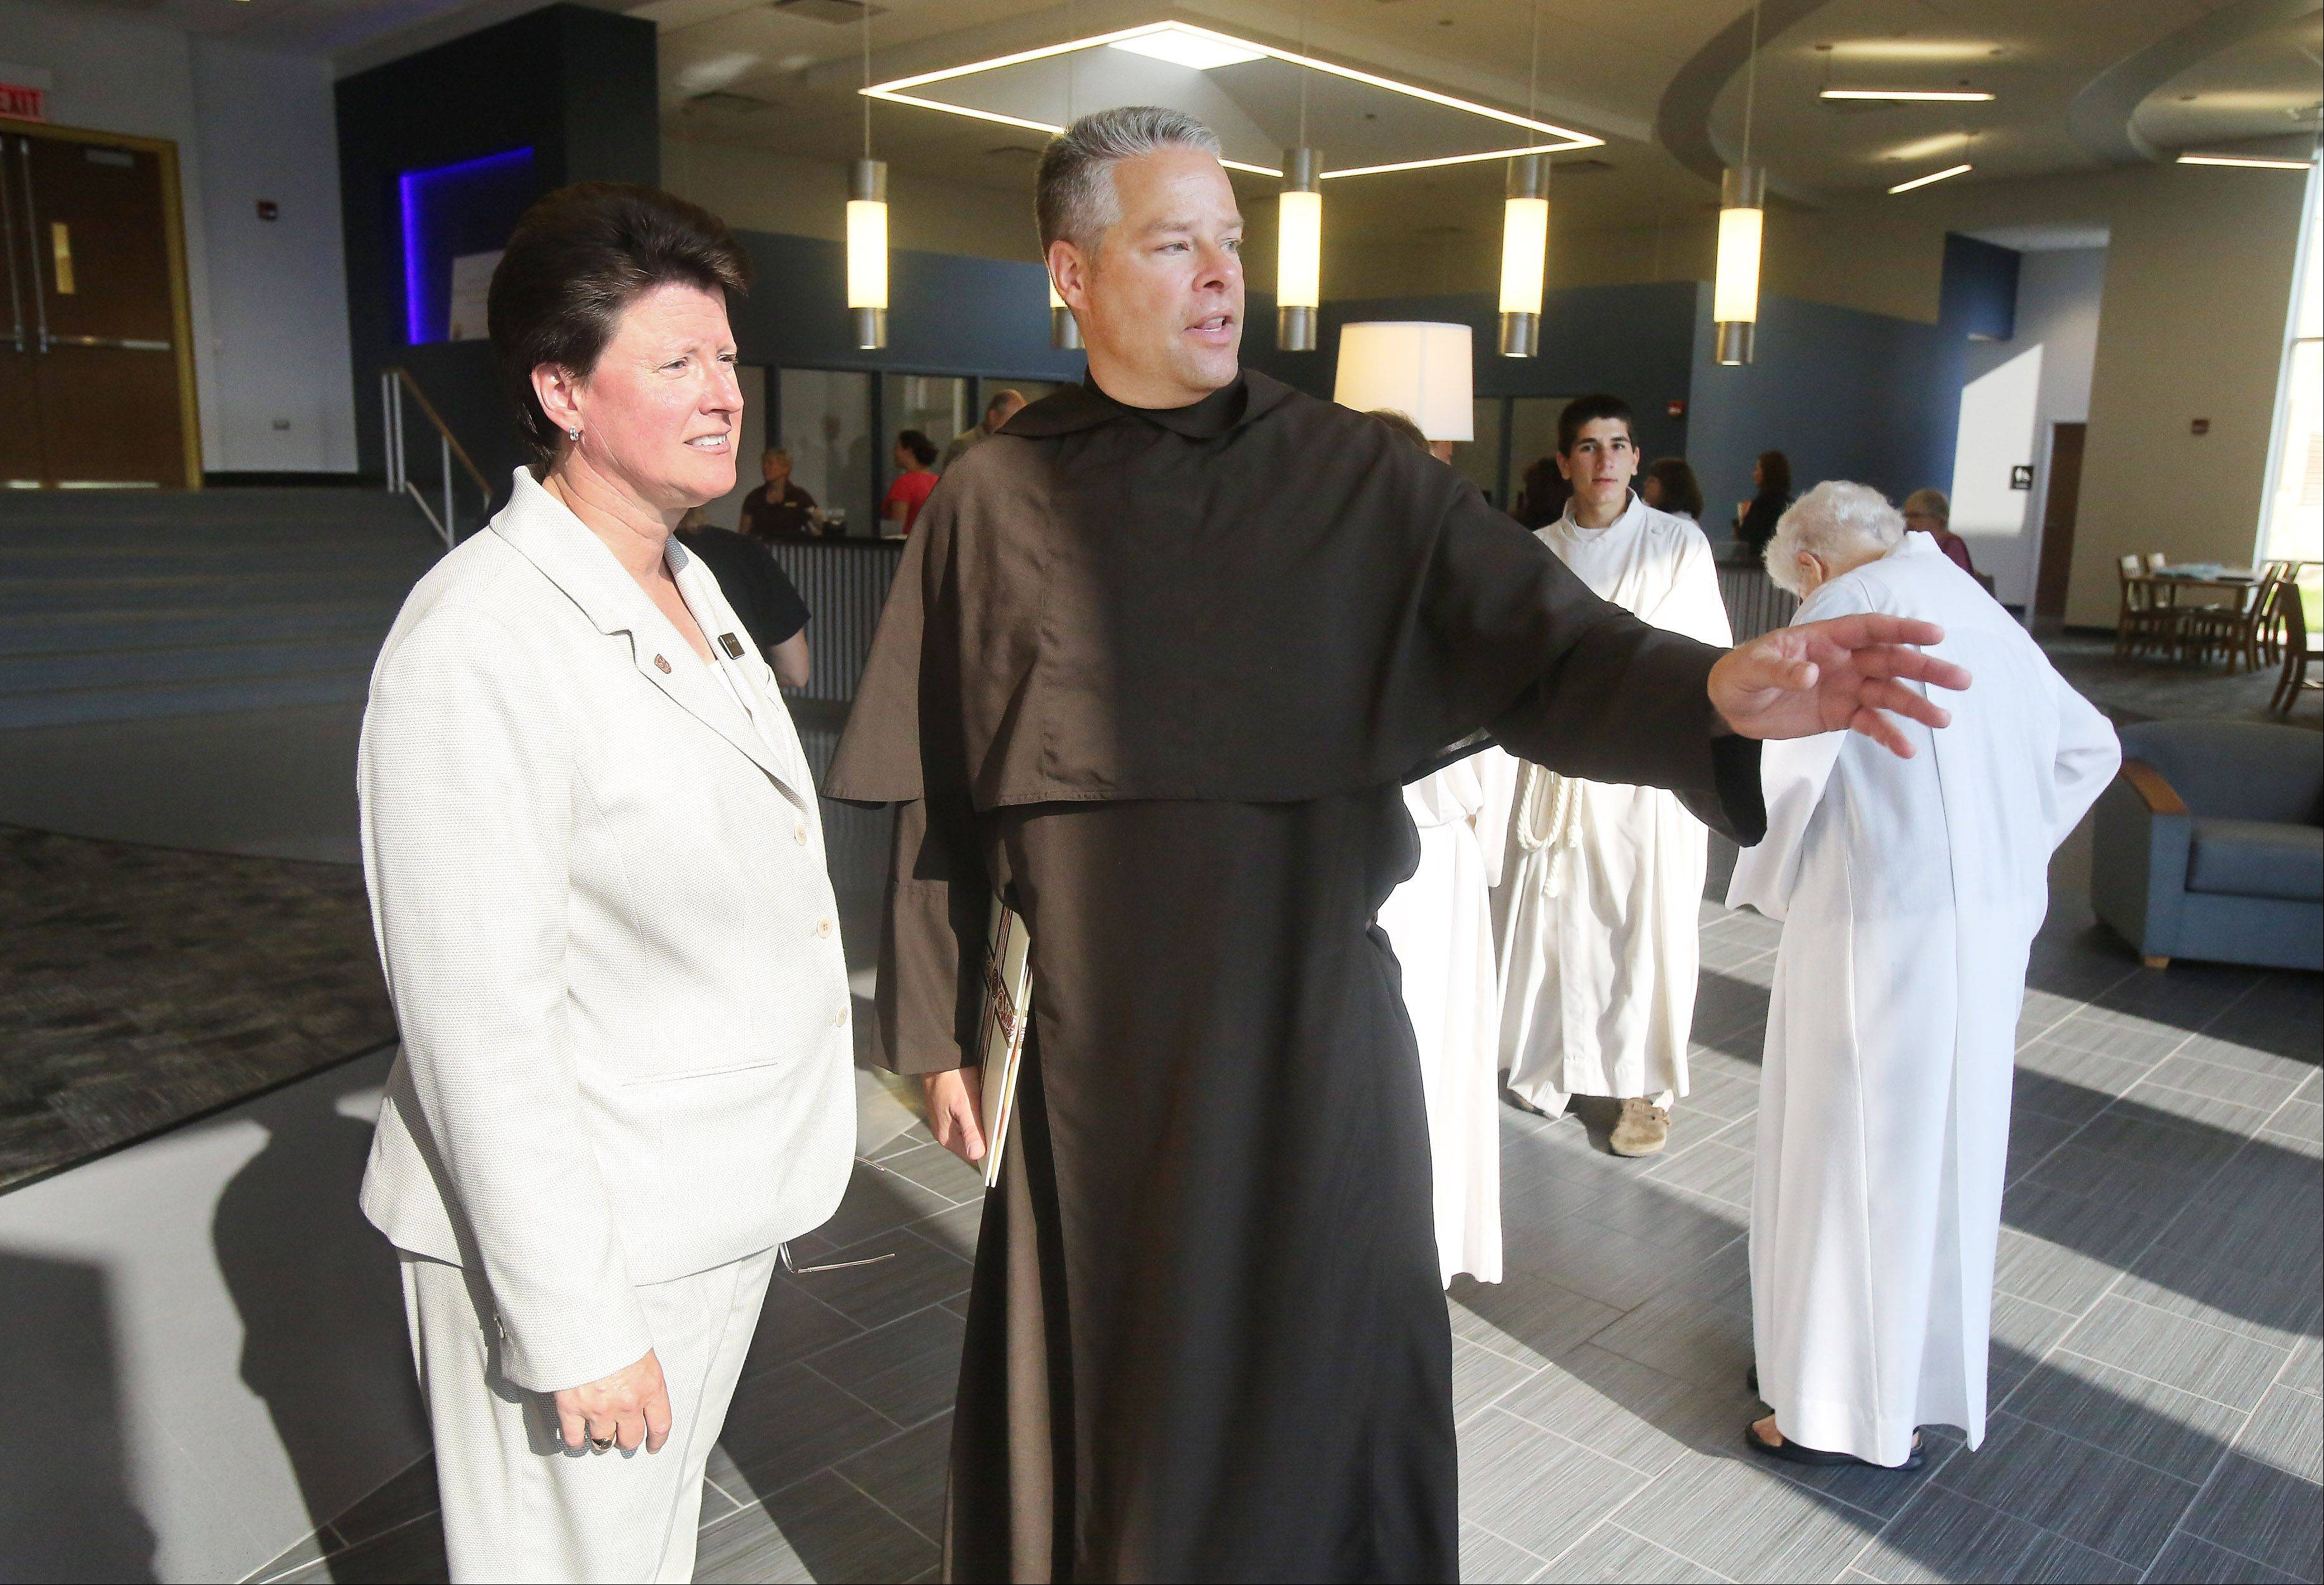 Judith Mucheck, president of Carmel Catholic High School, speaks with the Rev. Carl Markelz, Order of the Carmelites, about the library expansion. It was part of a $6.2 million capital project, including a new performing arts center, at the Mundelein school.